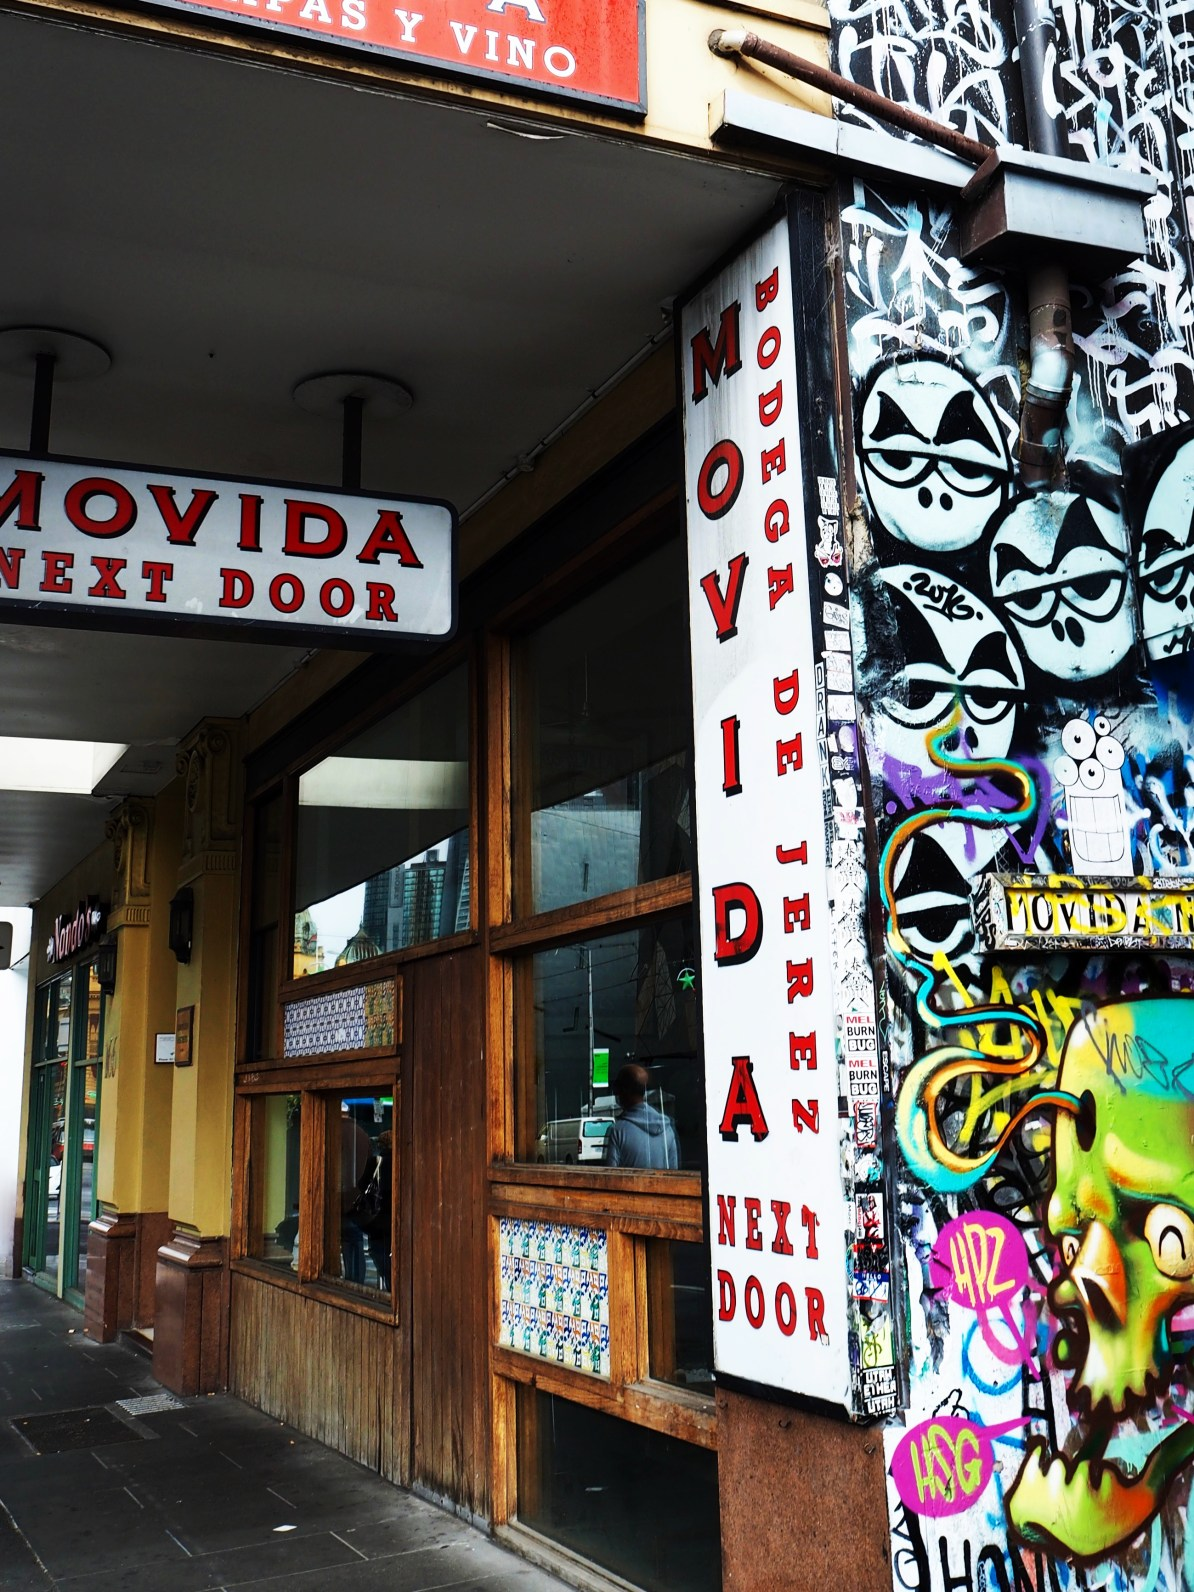 Movida Restaurant is located right next to Hosier Lane.